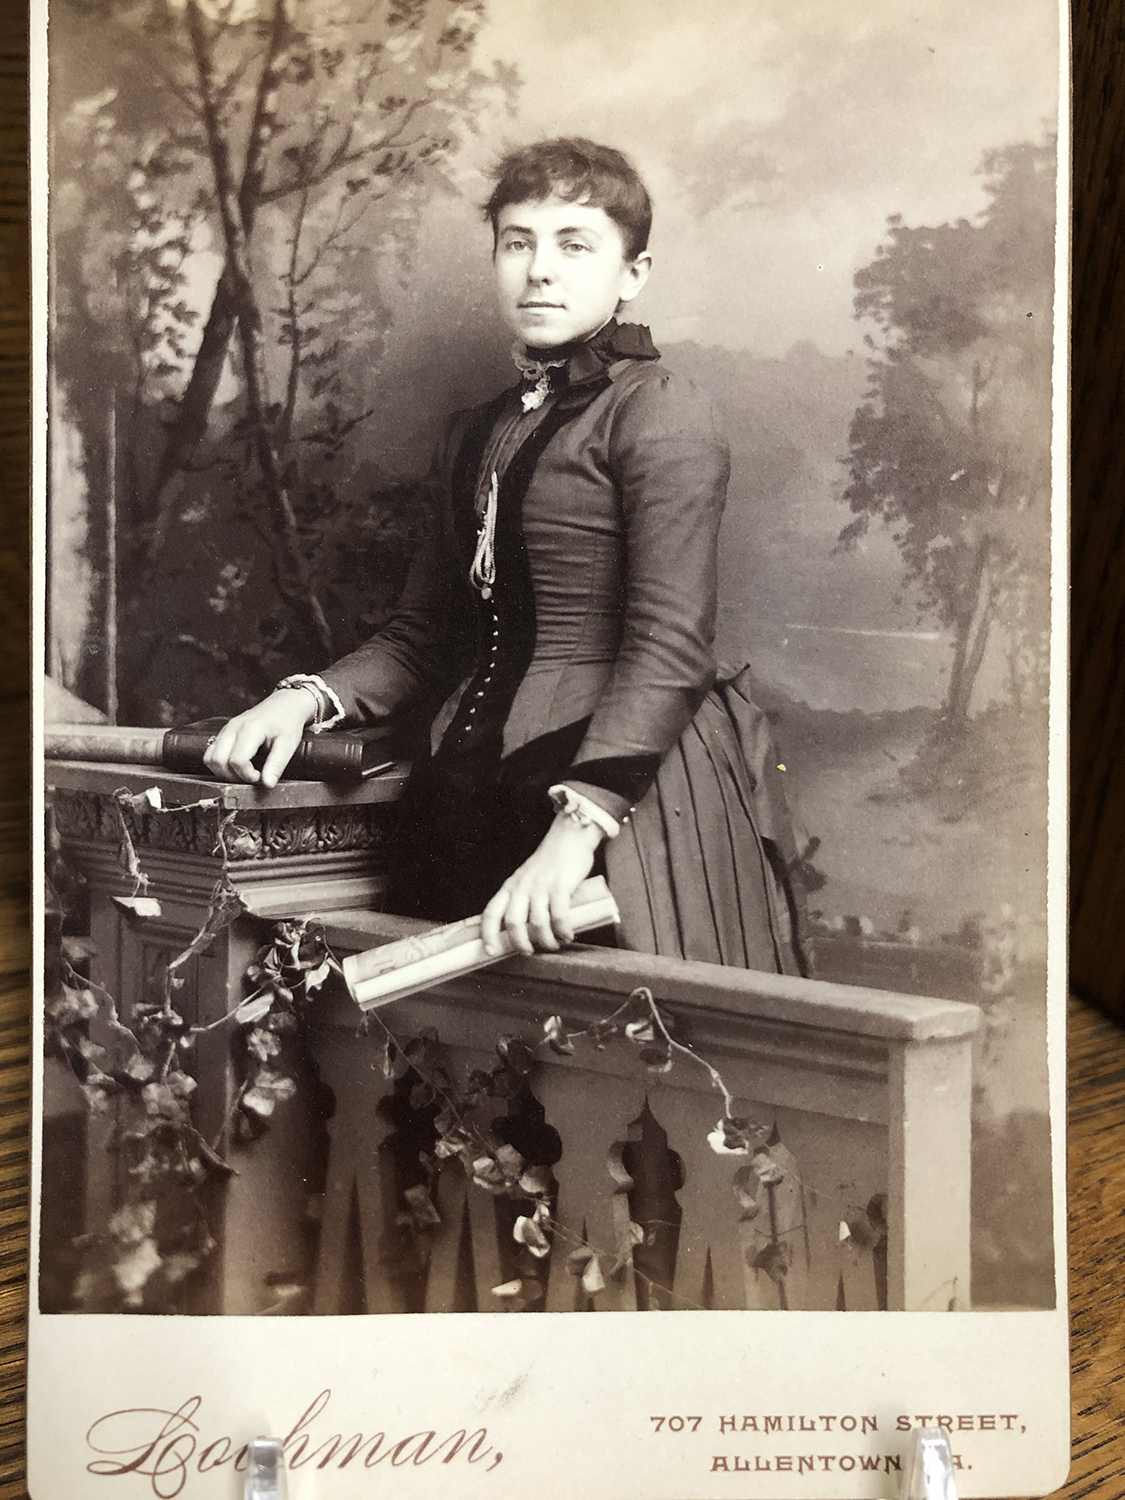 An unidentified portrait of a young lady in Victorian dress taken my Benjamin Lochman in his studio at 707 Hamilton Street in Allentown, Pennsylvania